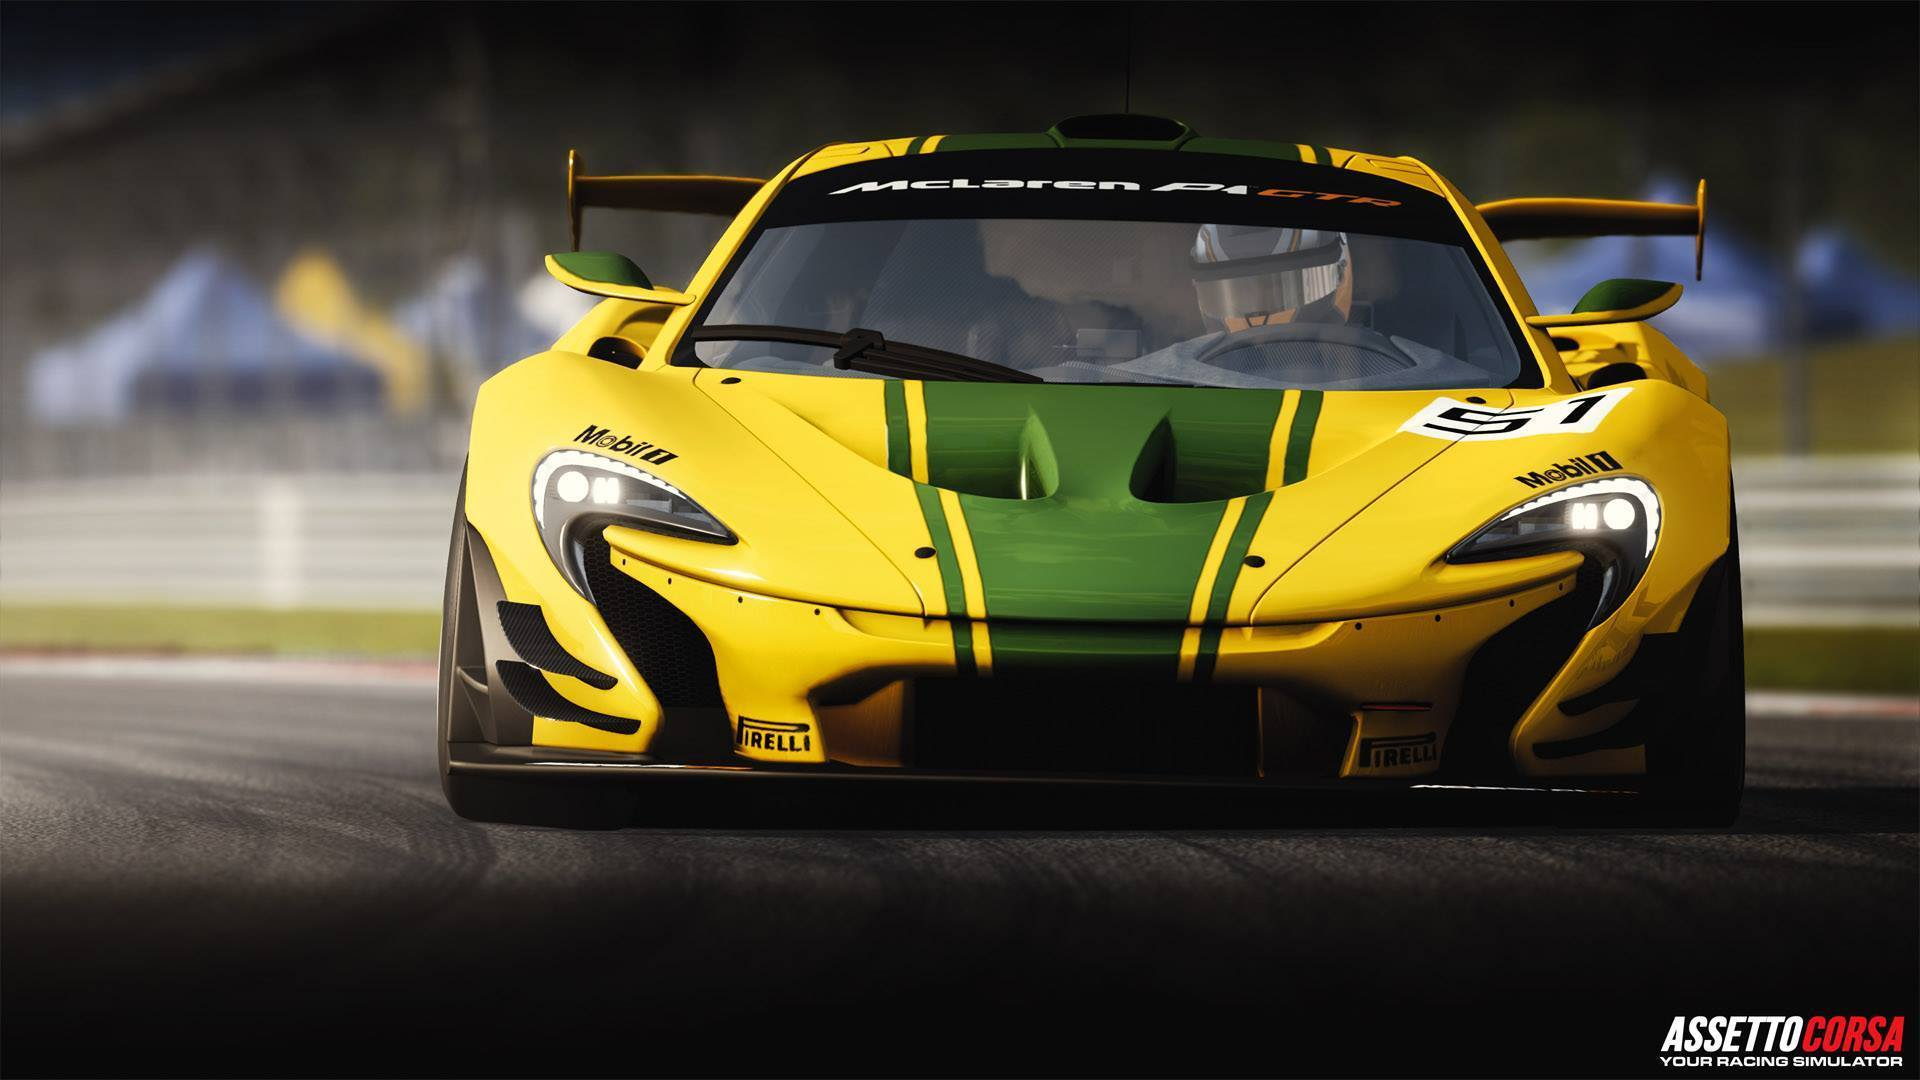 Assetto Corsa Ready To Race Dlc Car Pack Arrives May 18